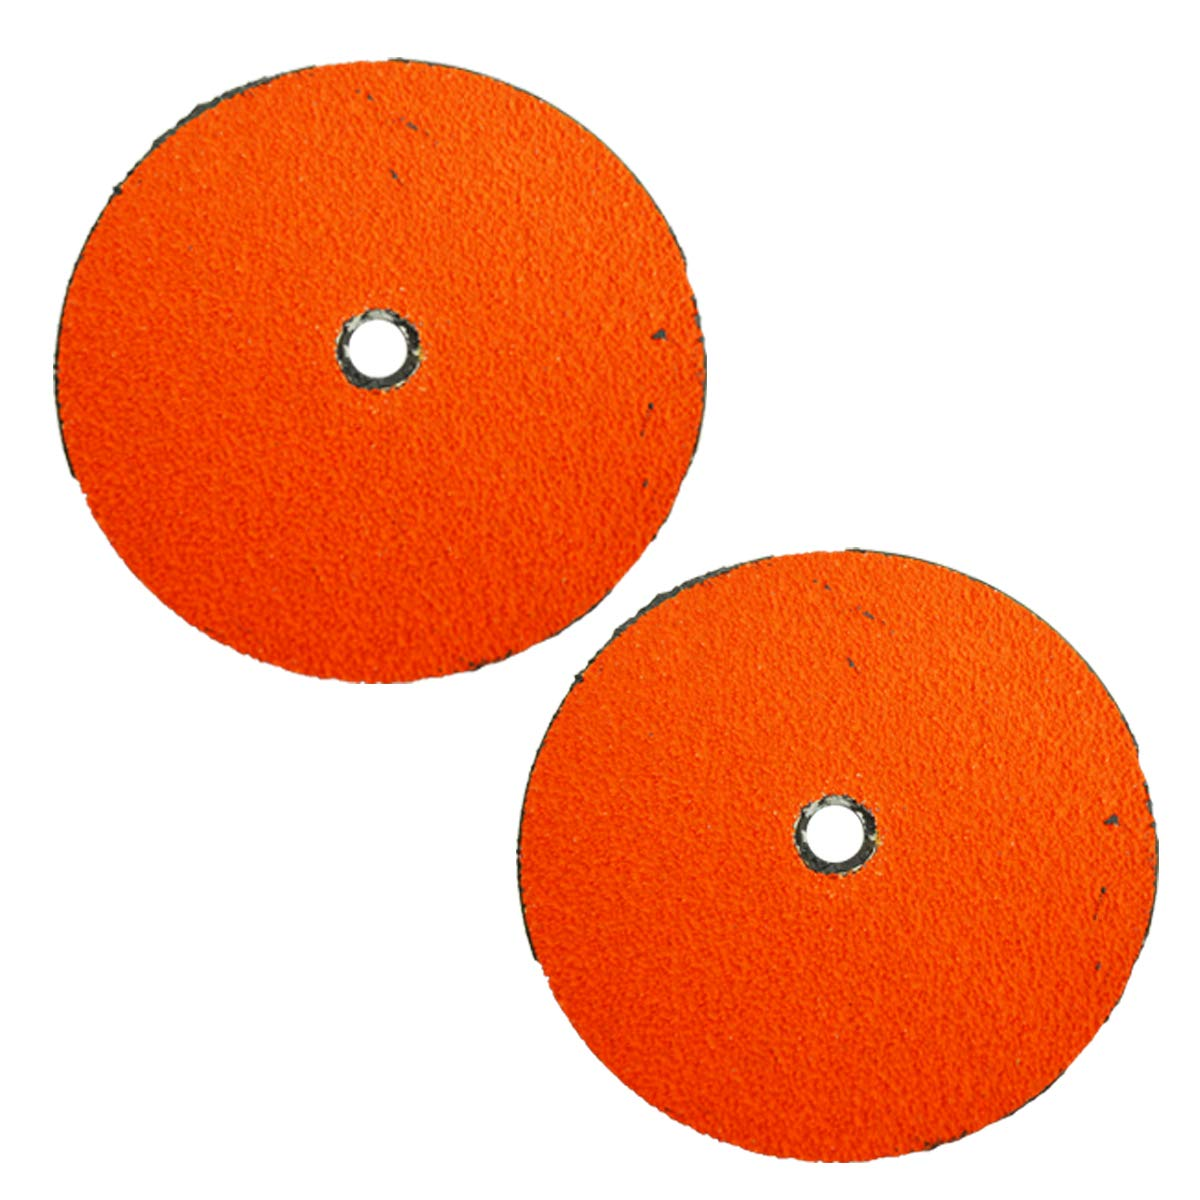 2 11710 Orange Disc 7 RBG712 Abrasive Grinding Wheel RBG Grinder 712 RBG780 780